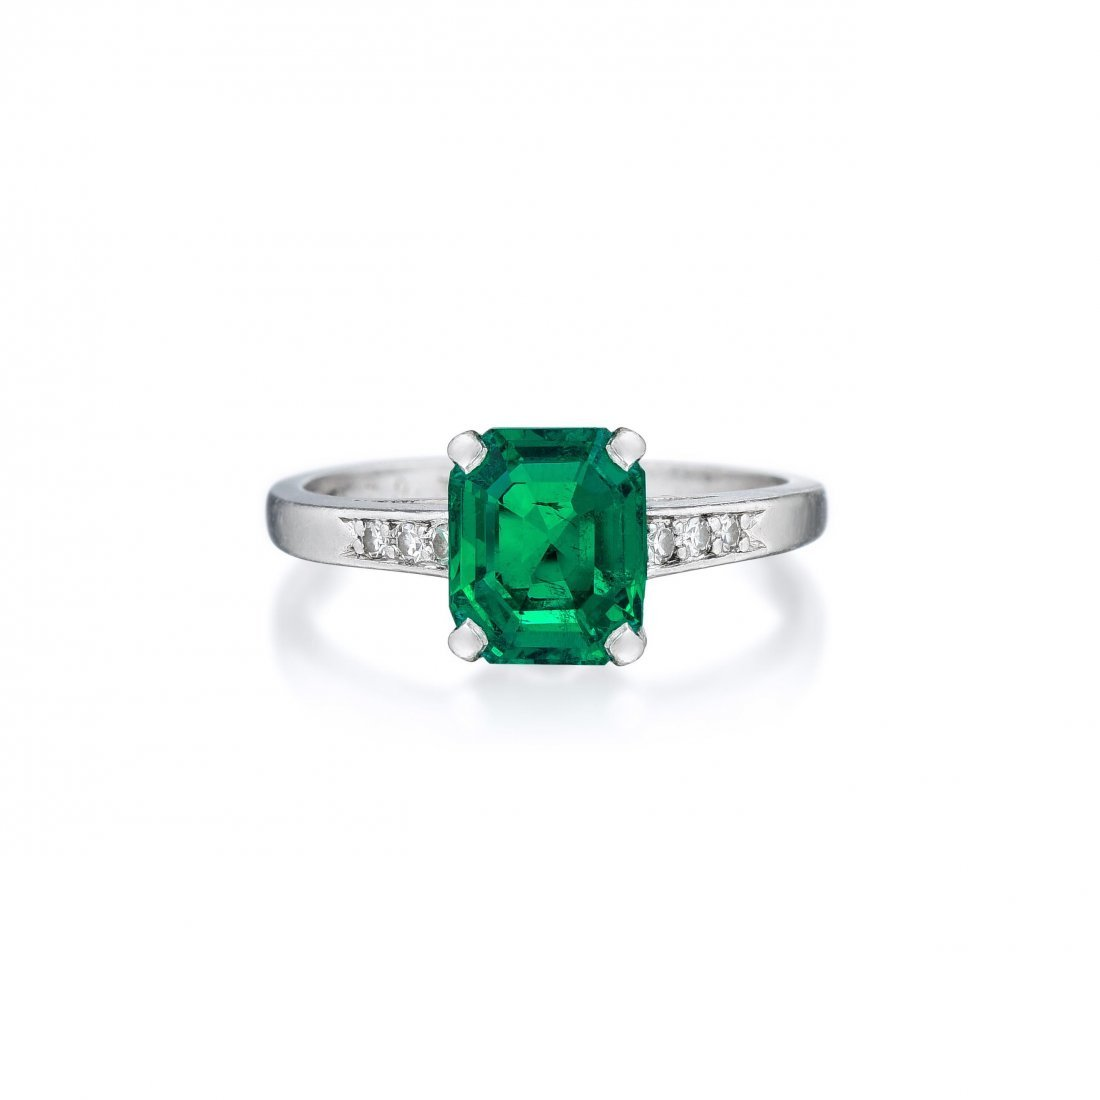 Cartier Art Deco Colombian Emerald and Diamond Ring